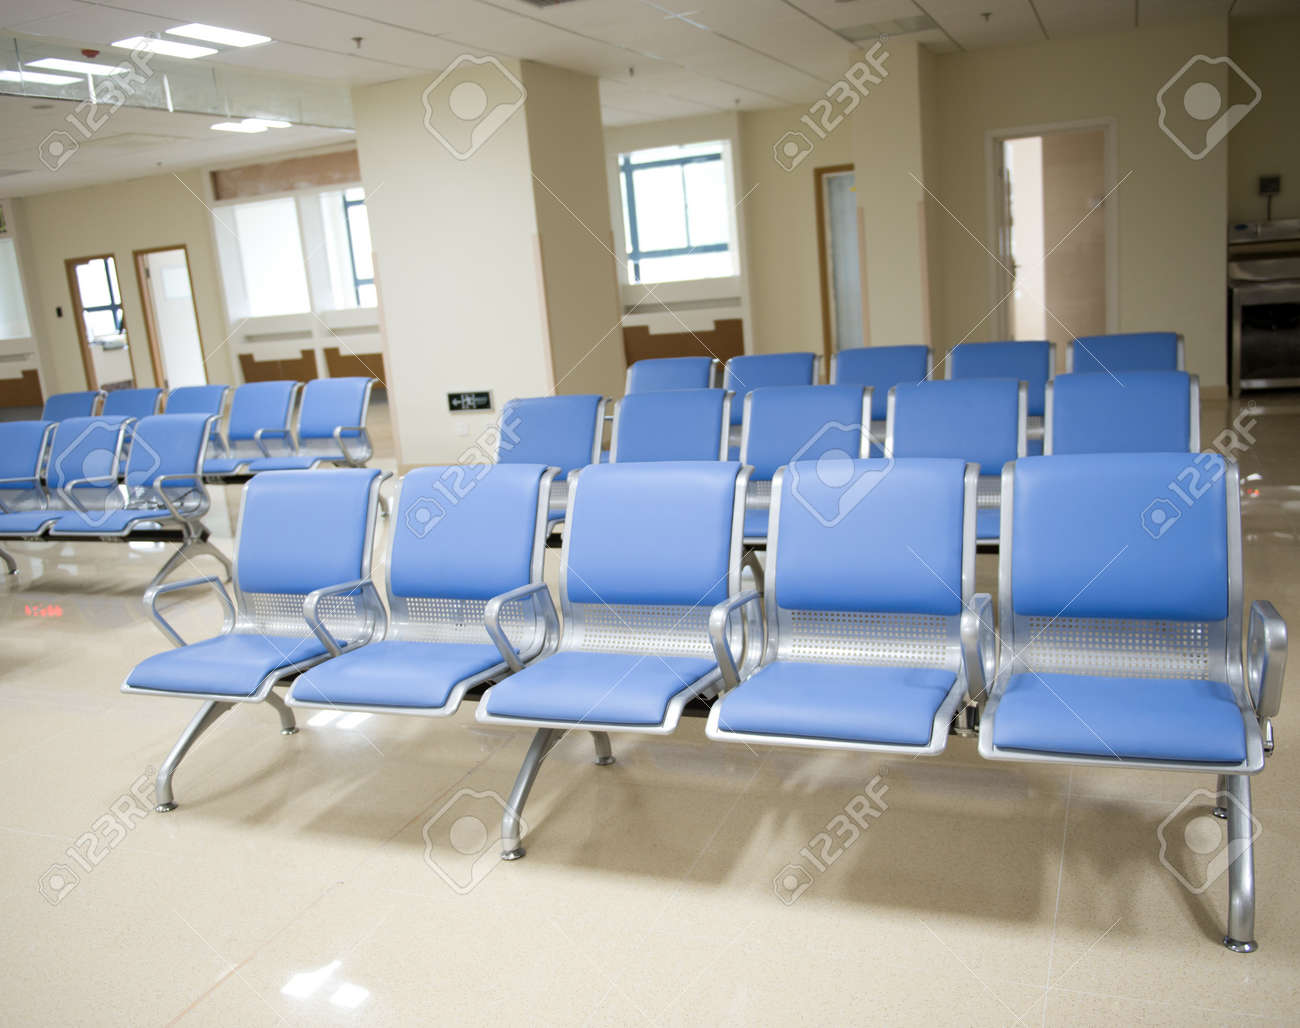 Empty chair in room - Hospital Waiting Room With Empty Chairs Stock Photo 17828424